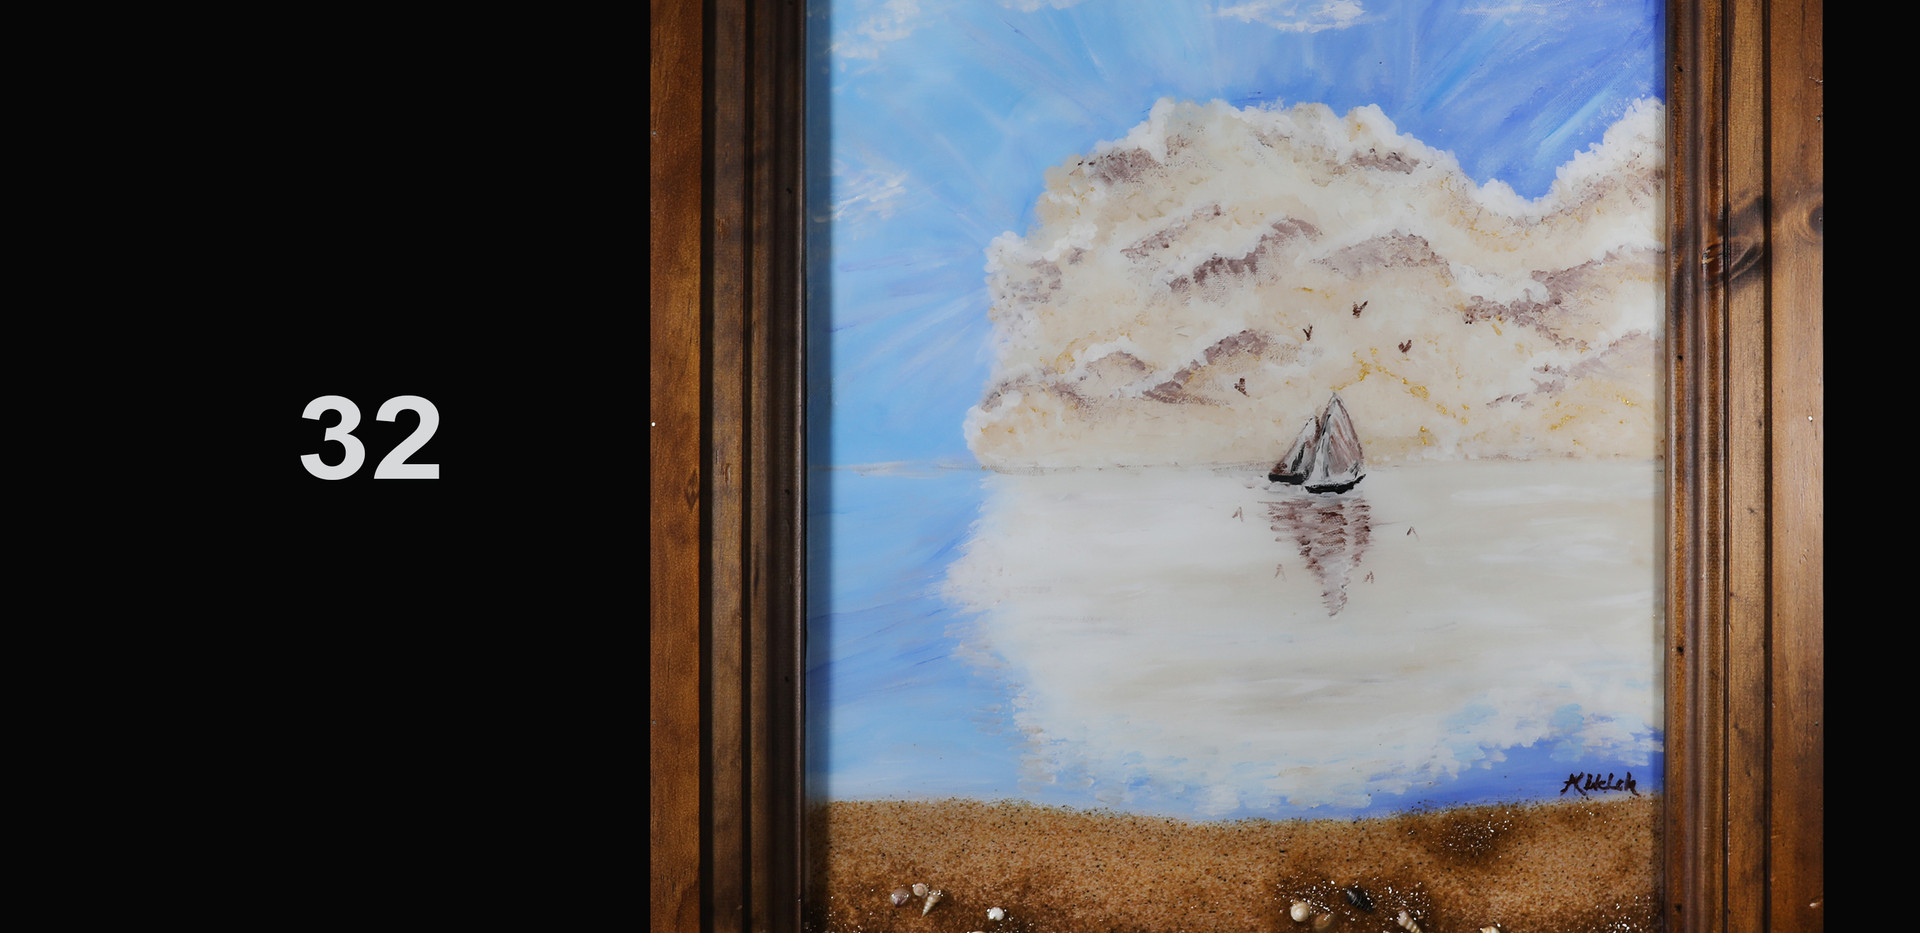 32. Clouds and Sails